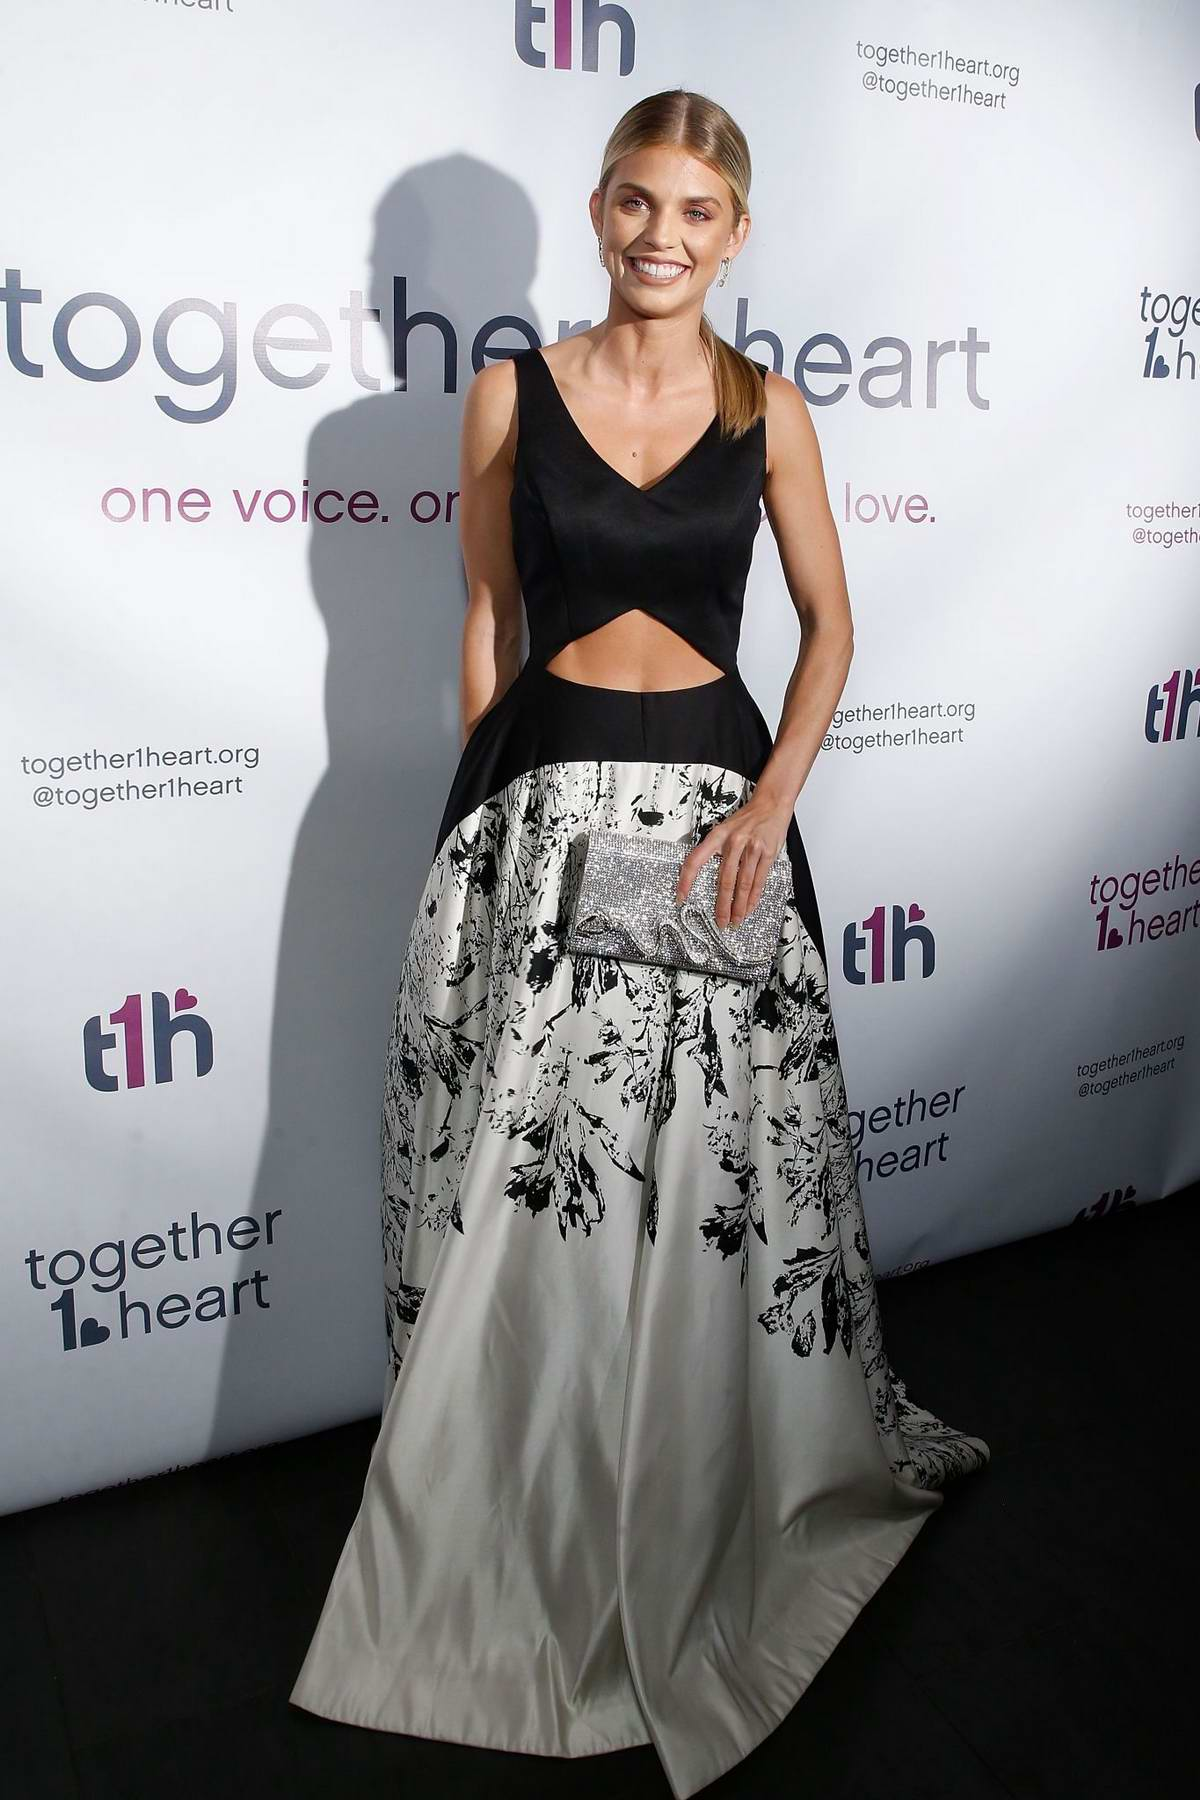 AnnaLynne McCord attends 2018 Together1Heart New York Gala at Tao Downtown in New York City